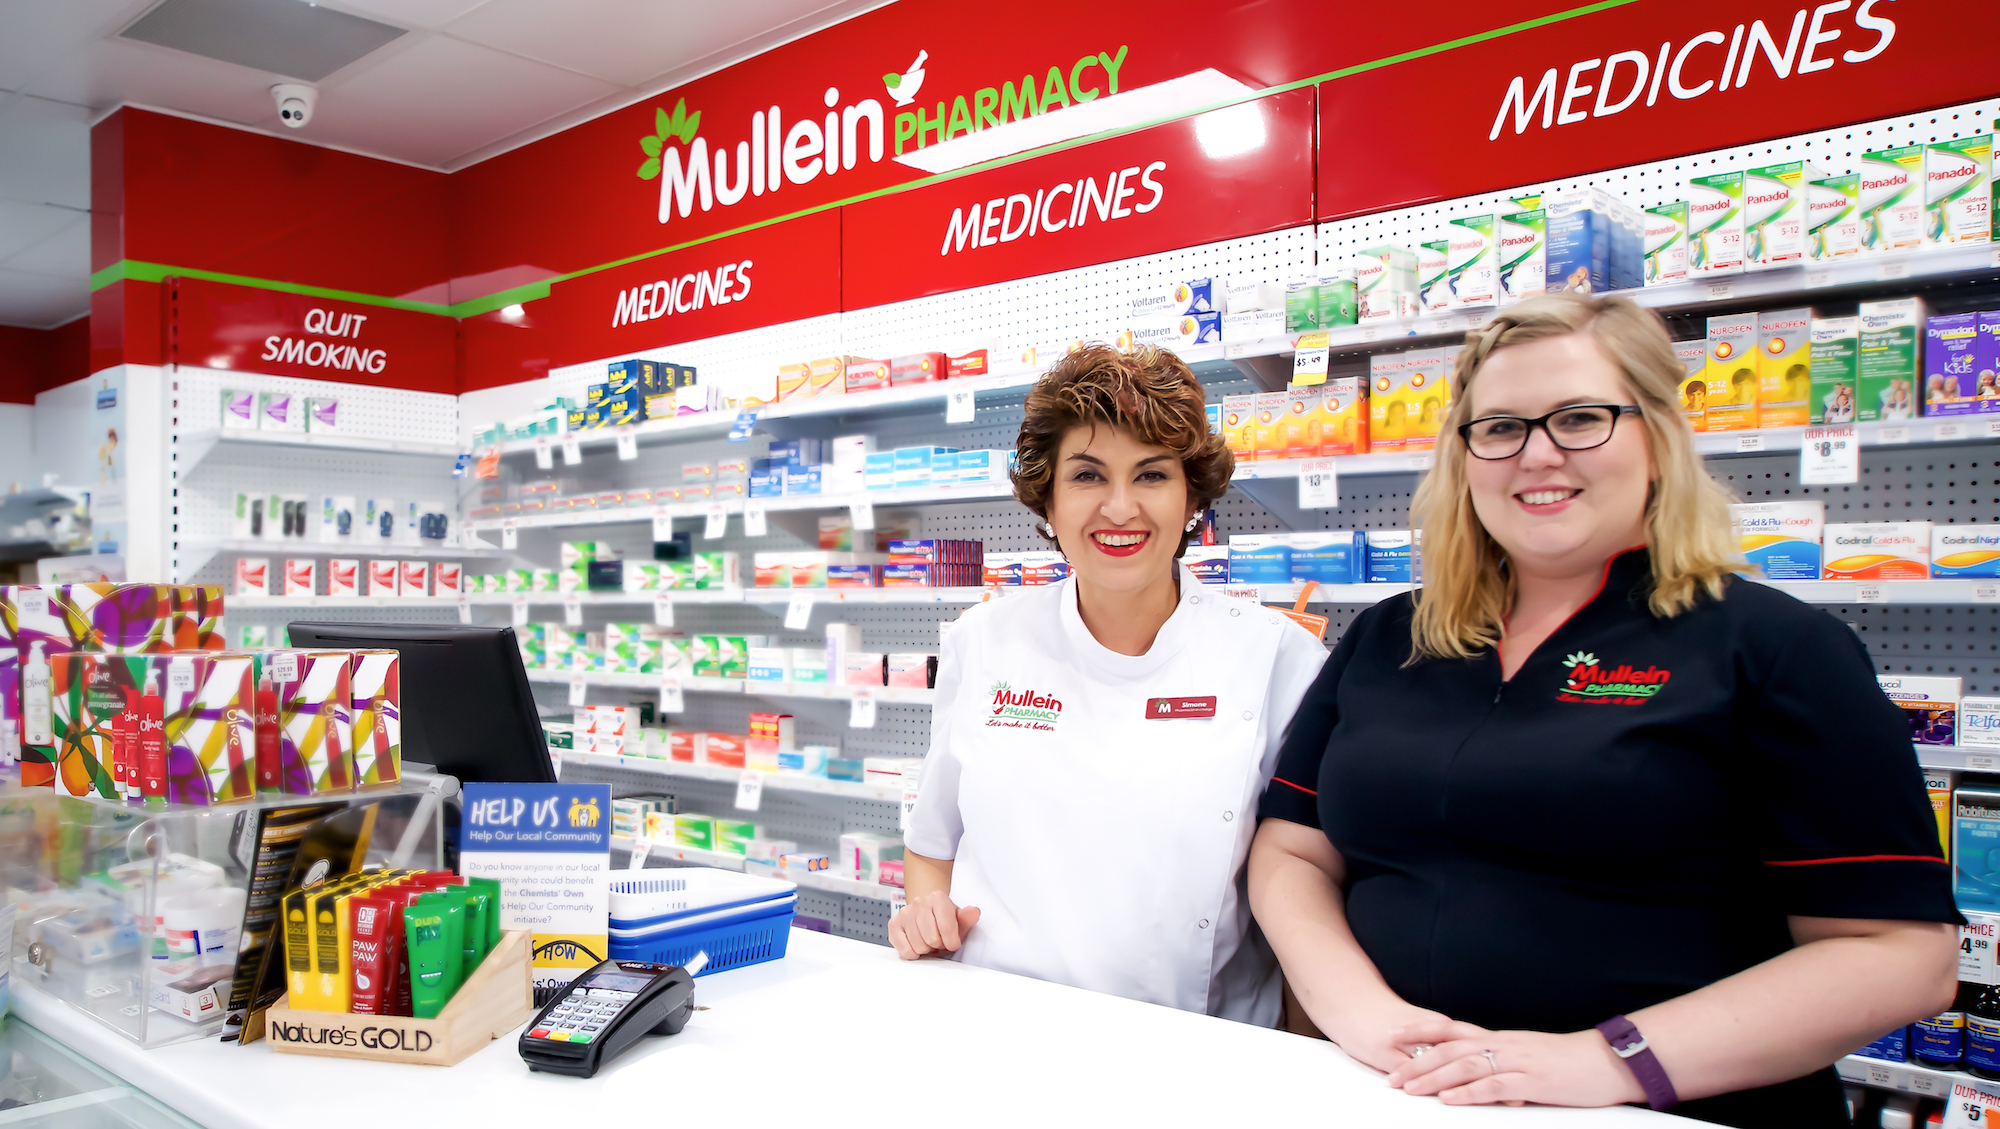 Mullein Pharmacy Mt Gravatt